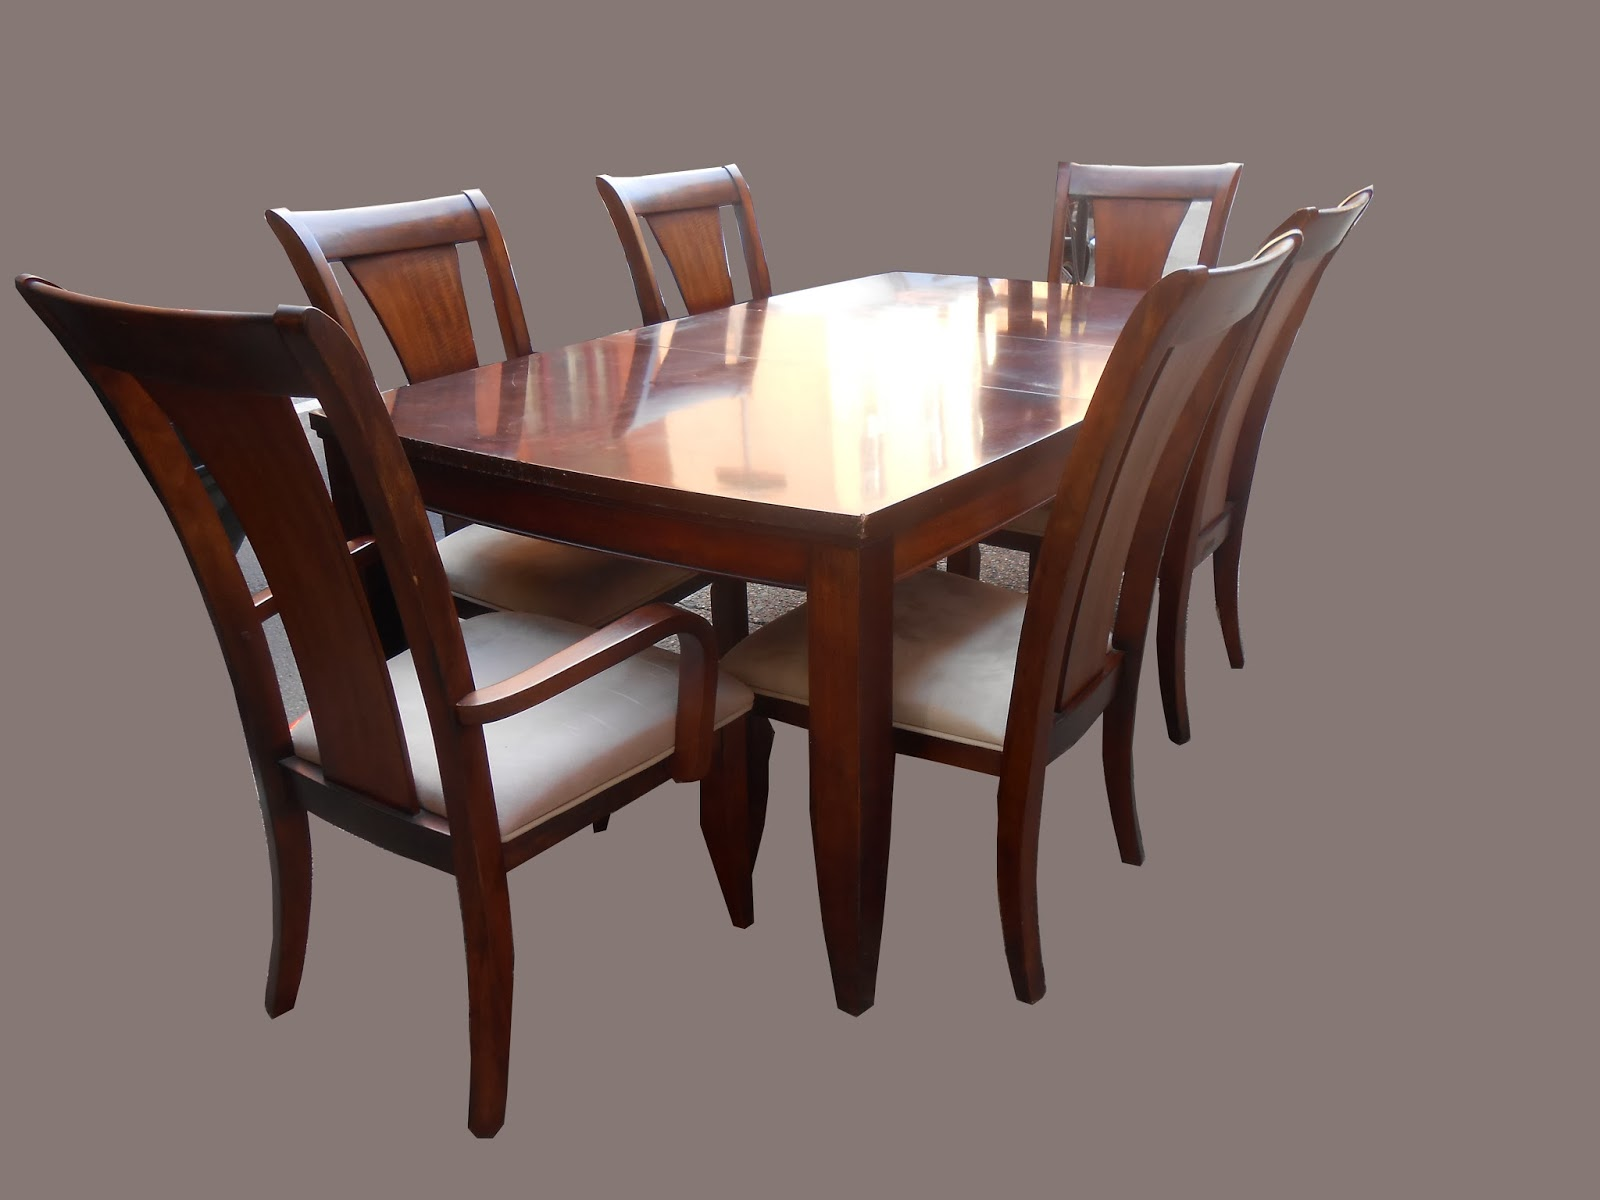 Dining room table 6 chairs round dining table set for 6 for Dining room table for 6